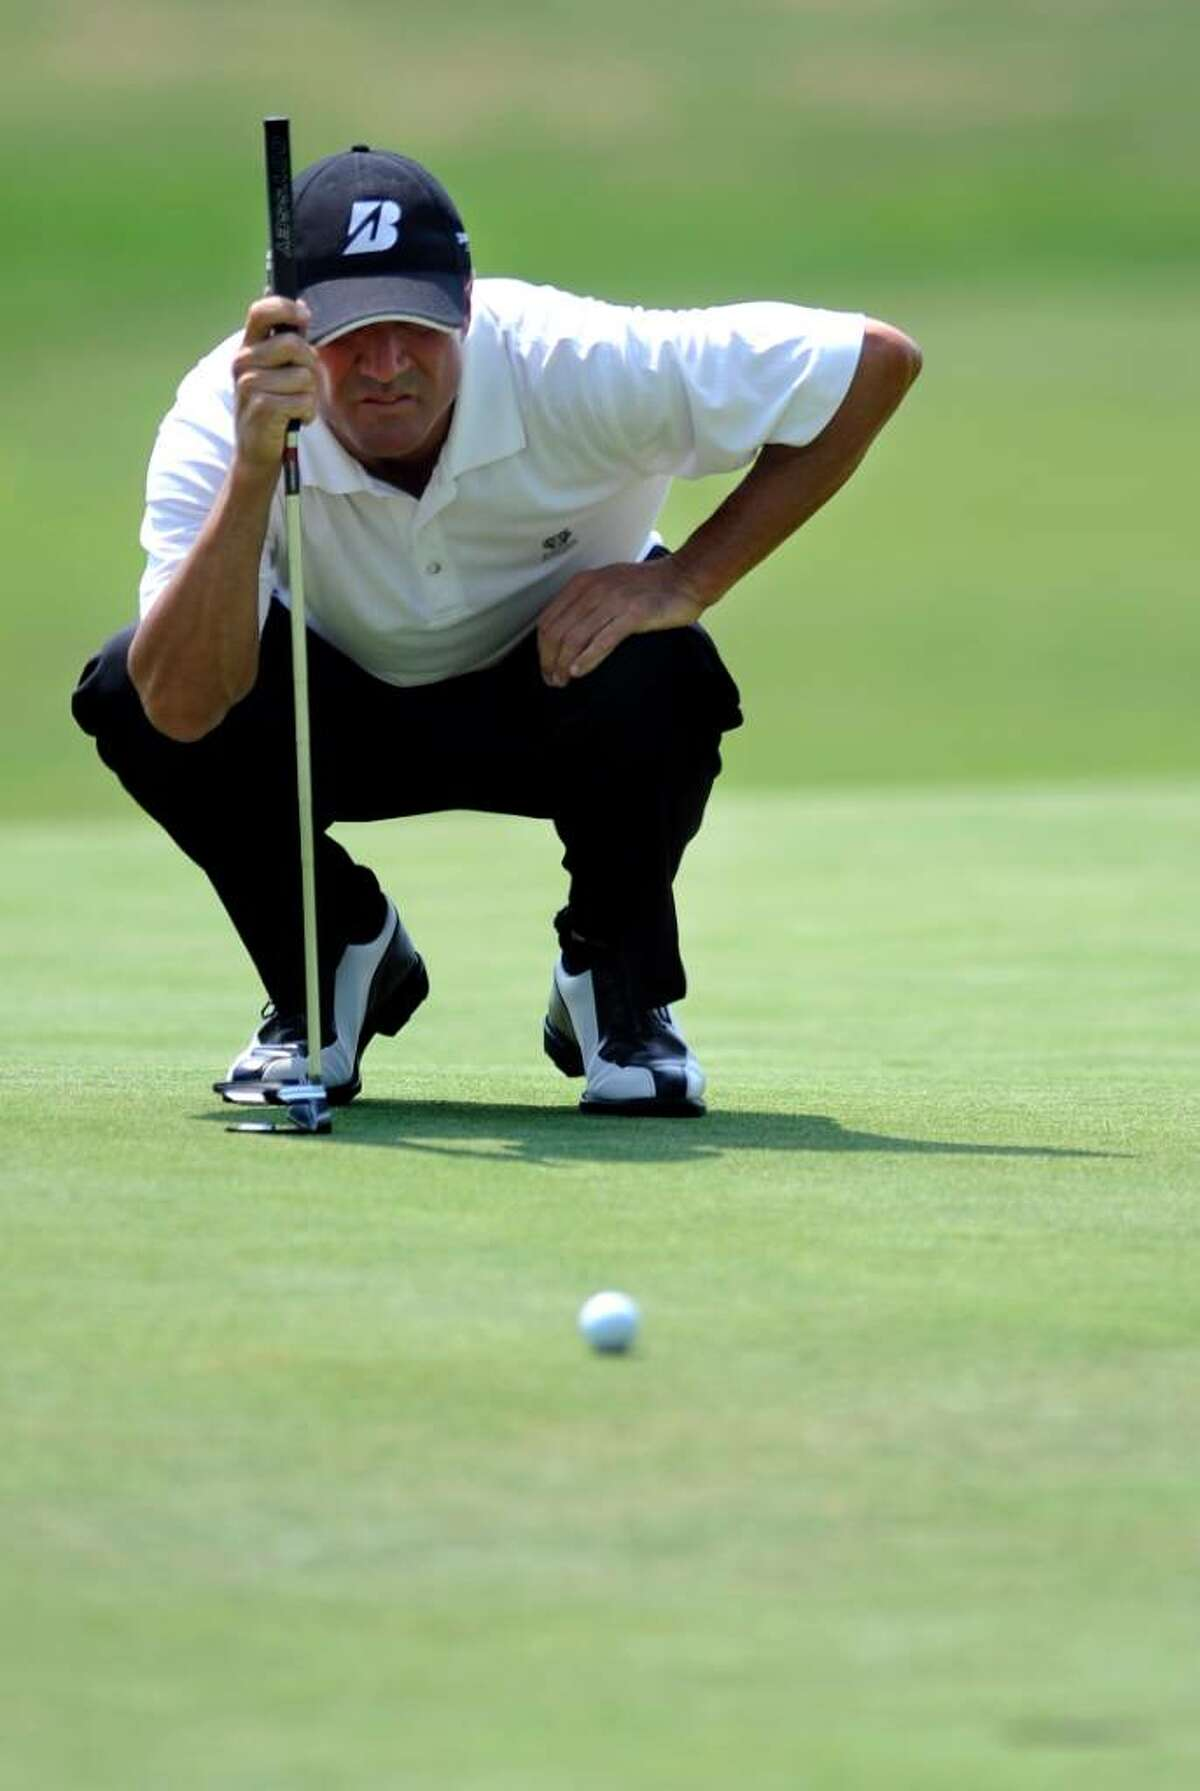 Bobby Gage competes in the Connecticut Open golf tournament at the Country Club of Fairfield on Wednesday, July 28, 2010.